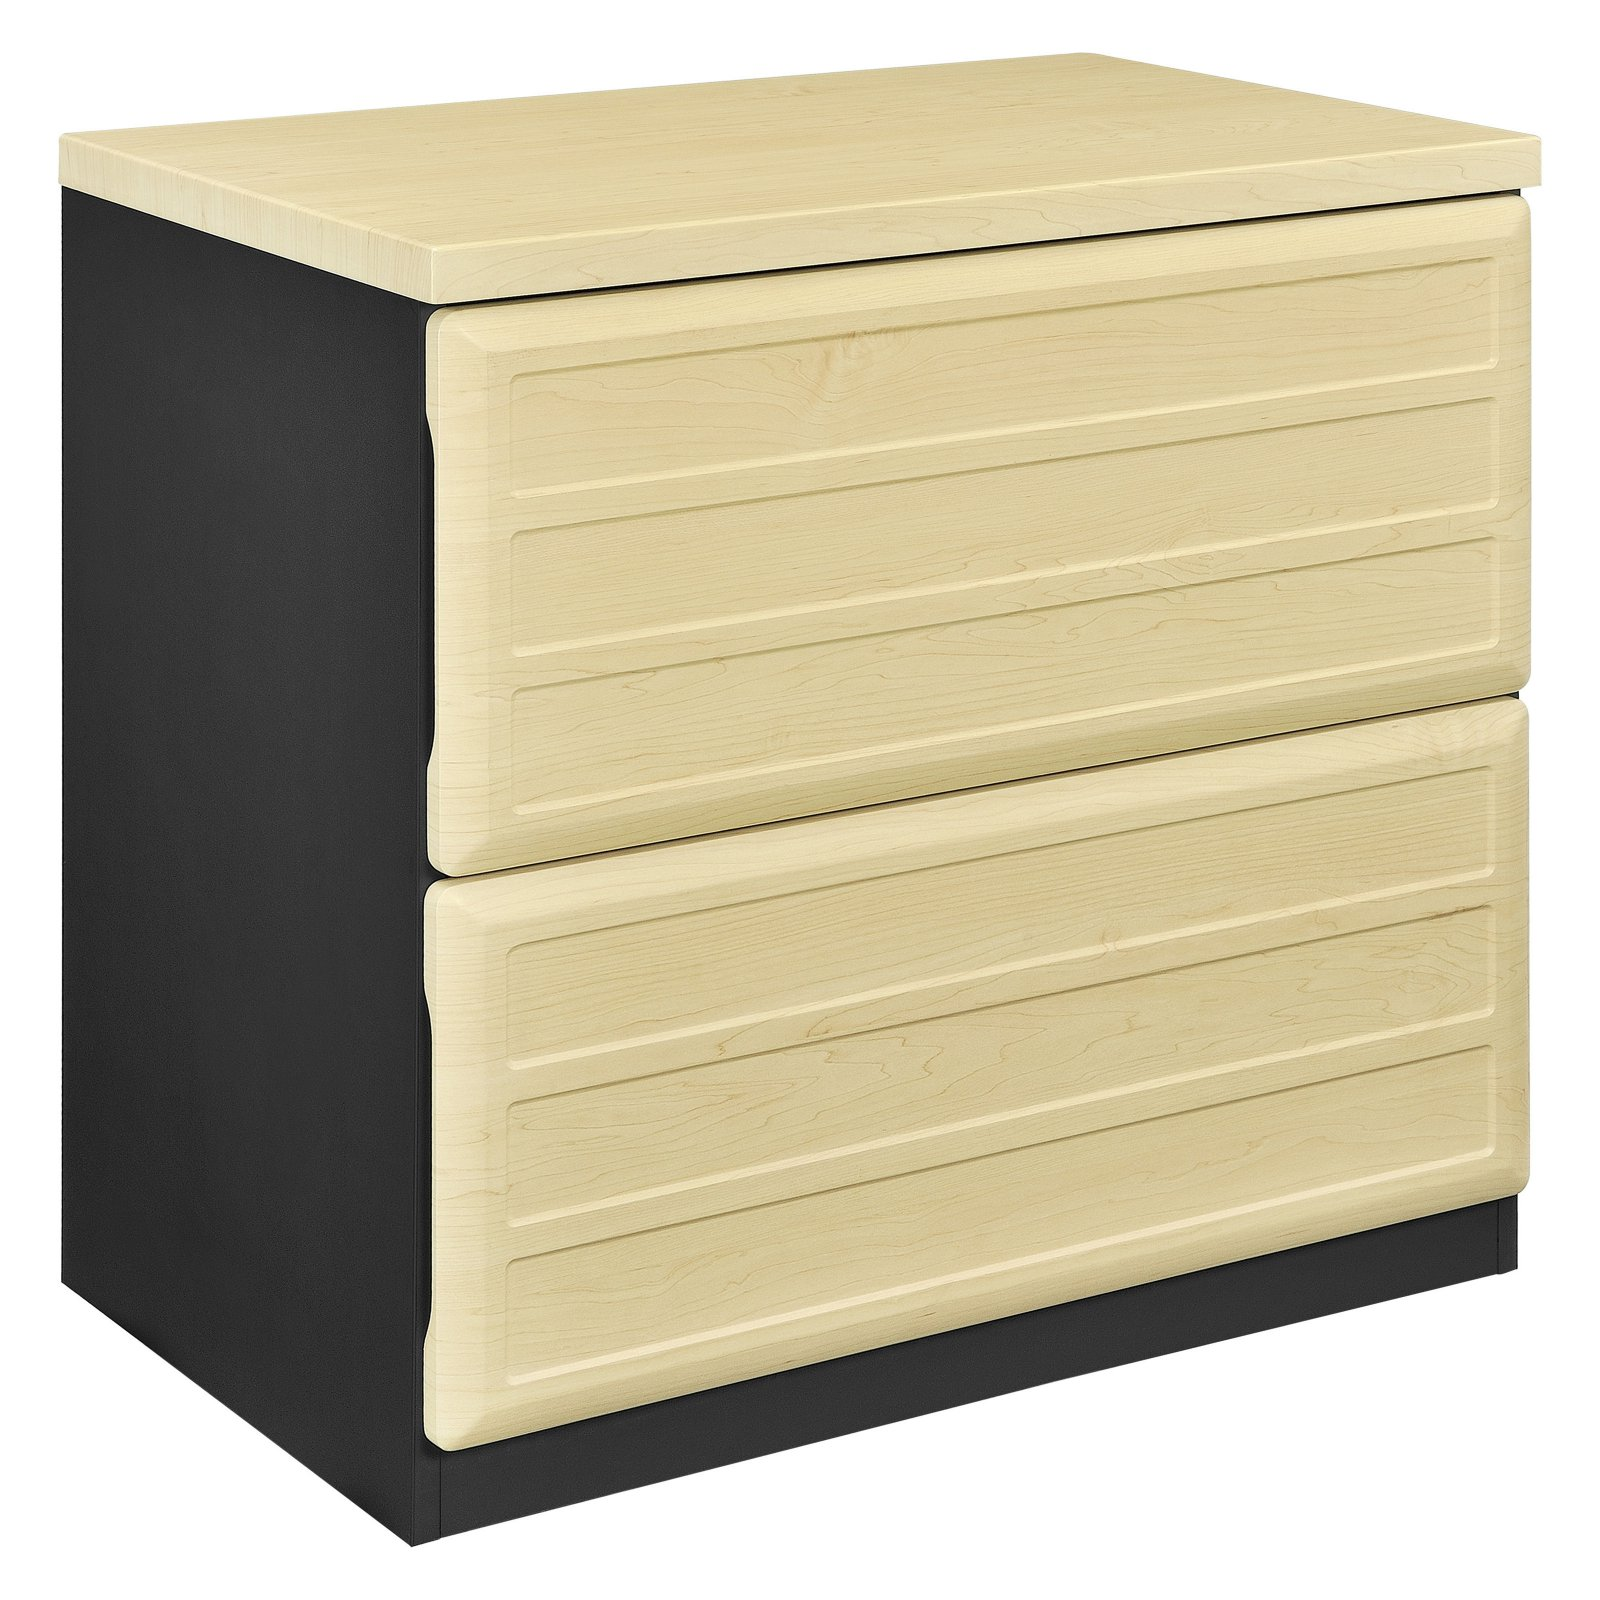 Ameriwood Home Pursuit Lateral File Cabinet, Light Brown/Gray